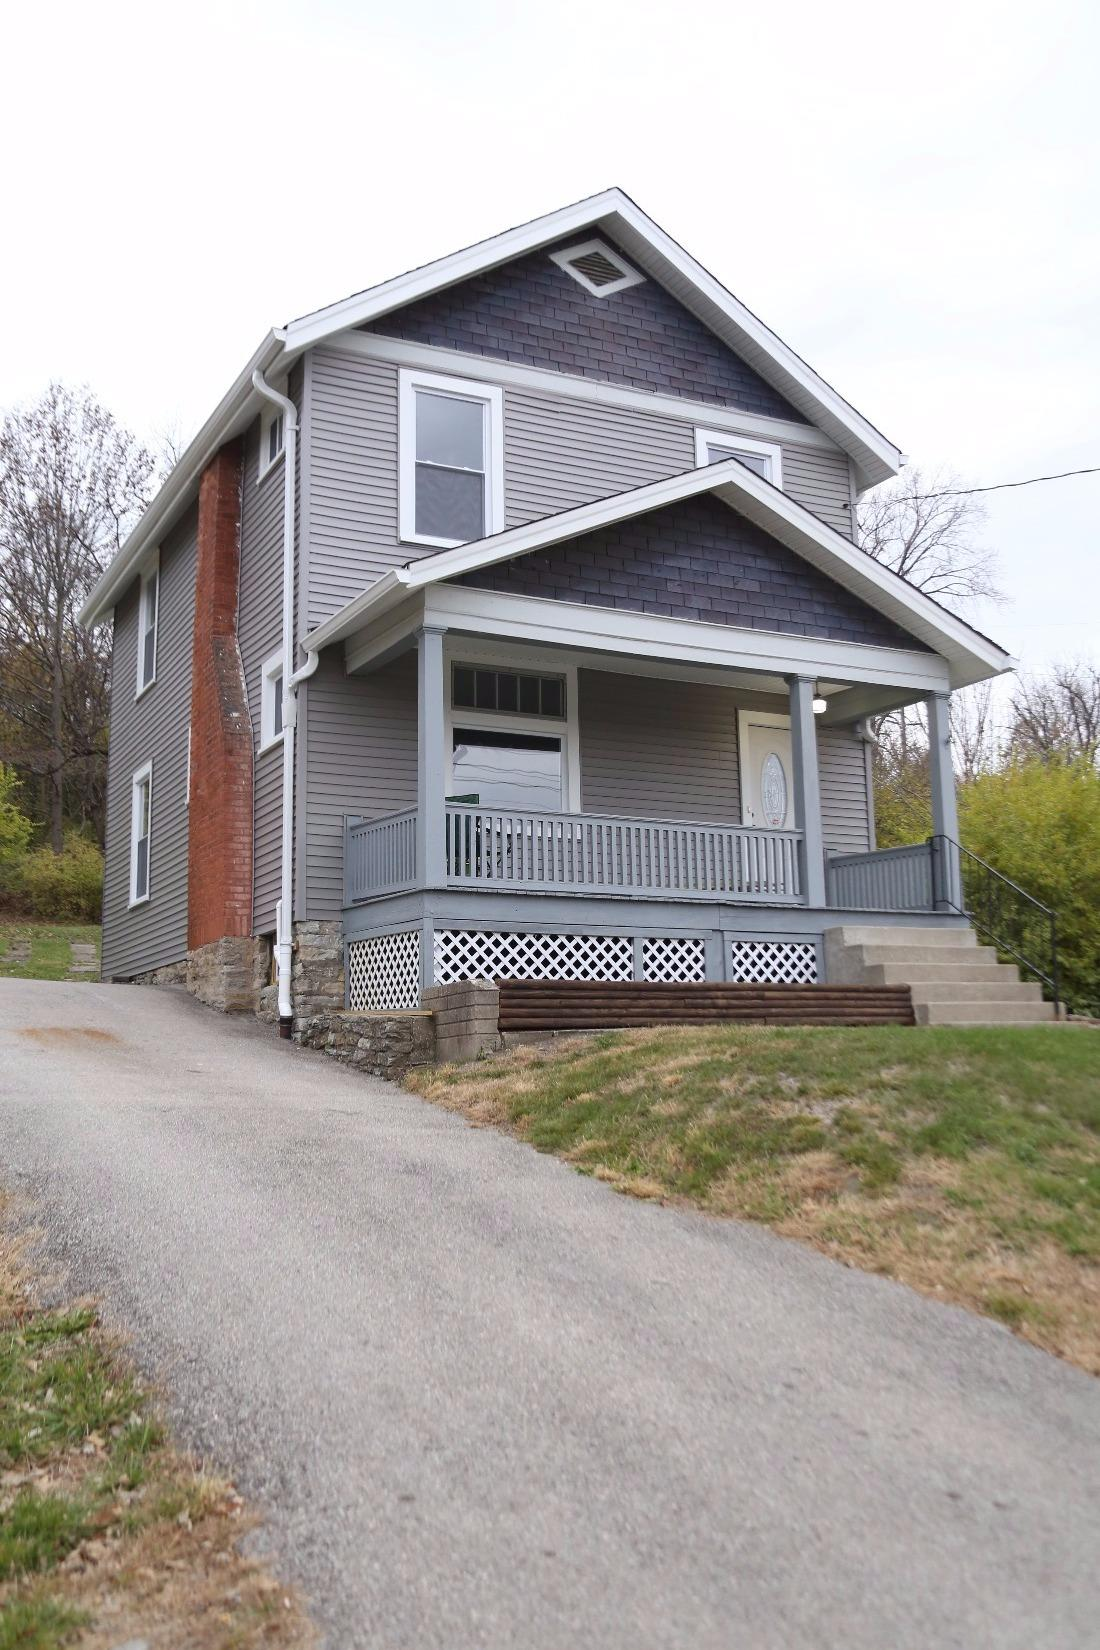 Photo 1 for 2746 Madison Ave, 48 Covington, KY 41015